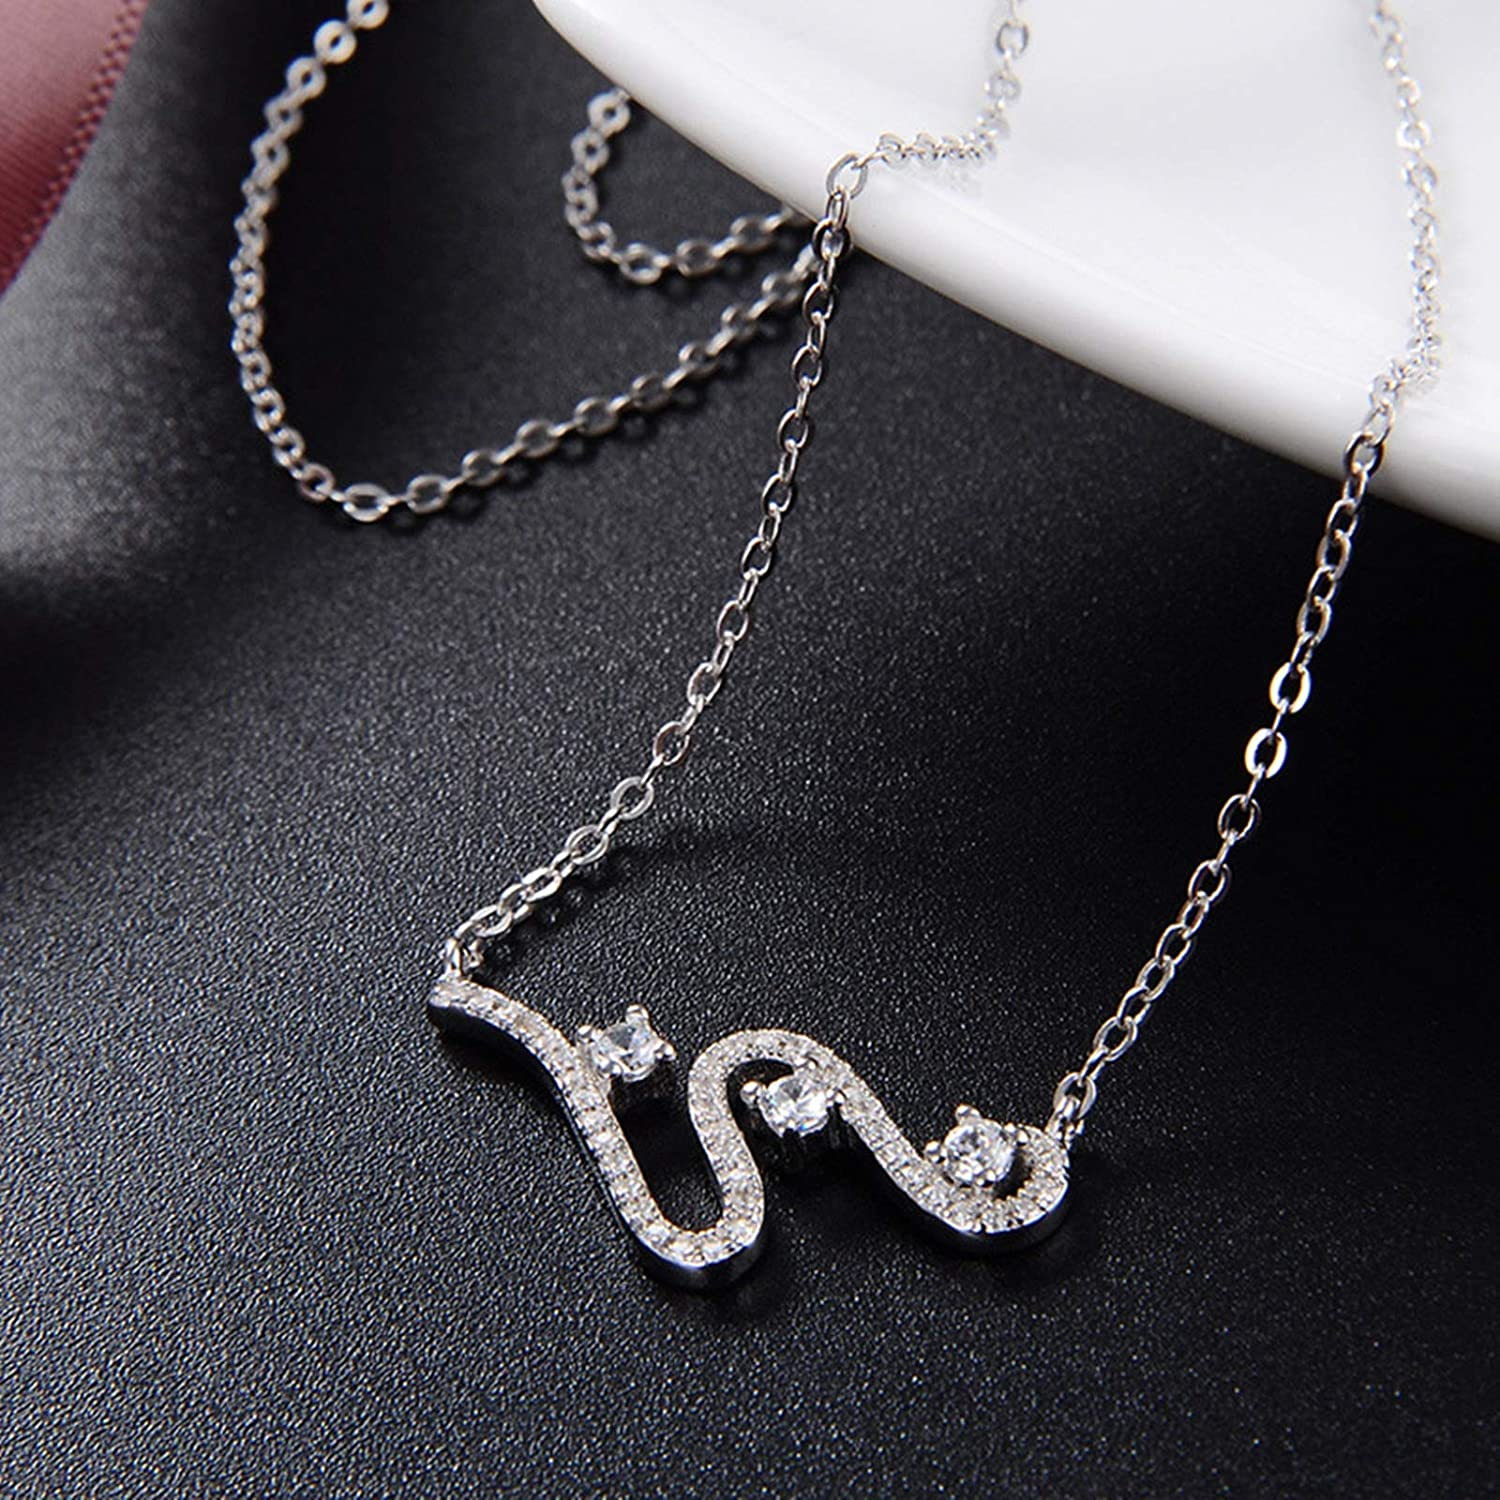 Aokarry 925 Sterling Silver S Shape Pendant Necklace for Women Silver 41+3CM